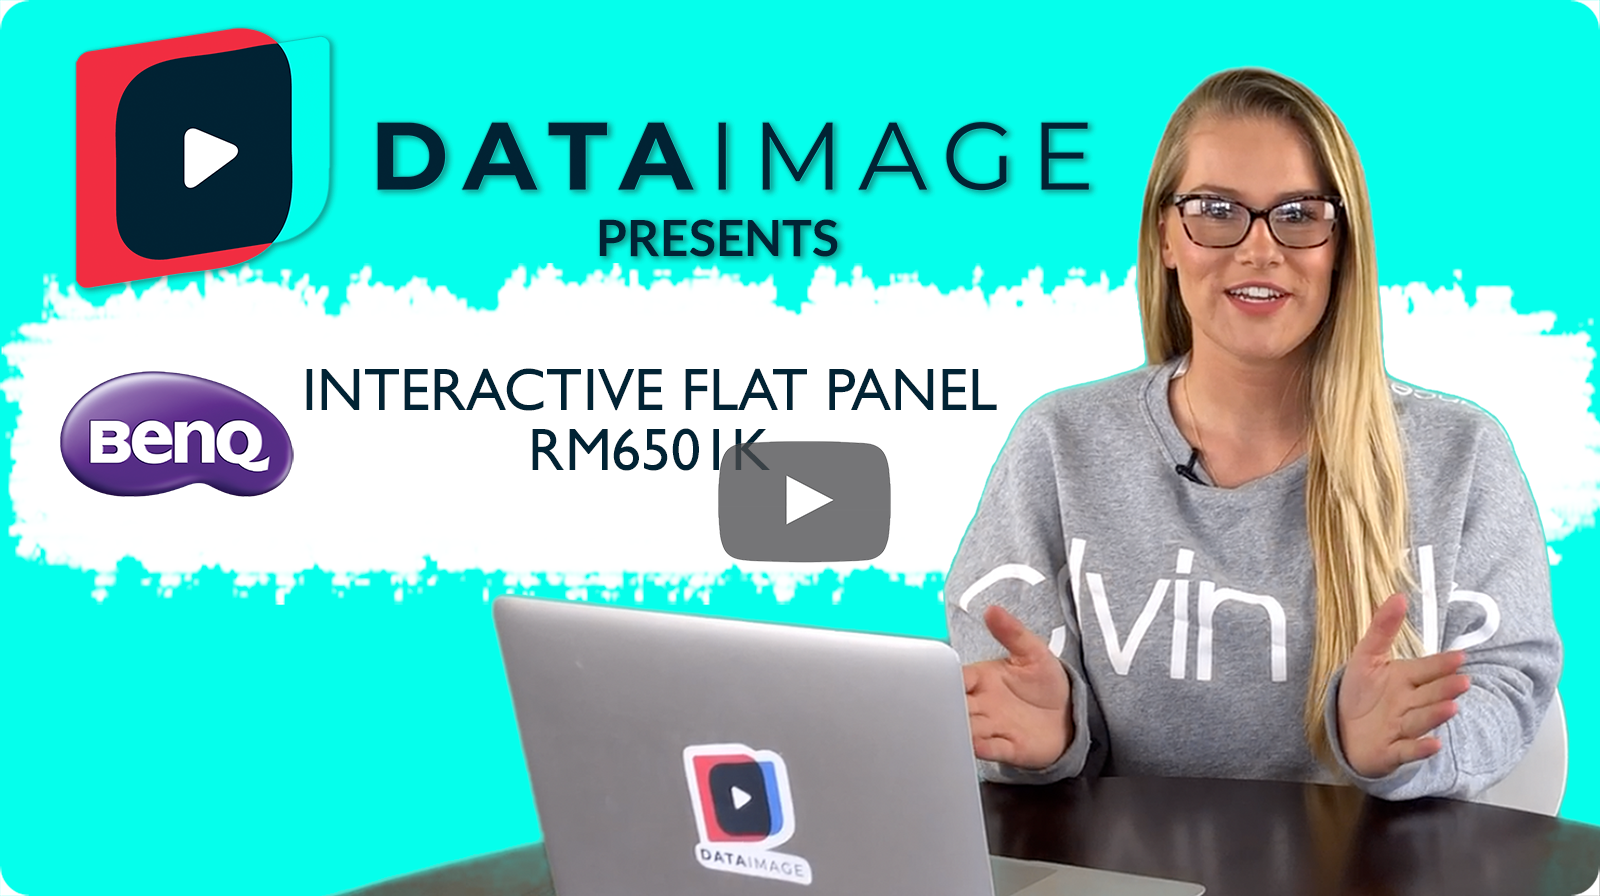 Data Image Presents the BenQ Interactive Flat Panel RM6501K